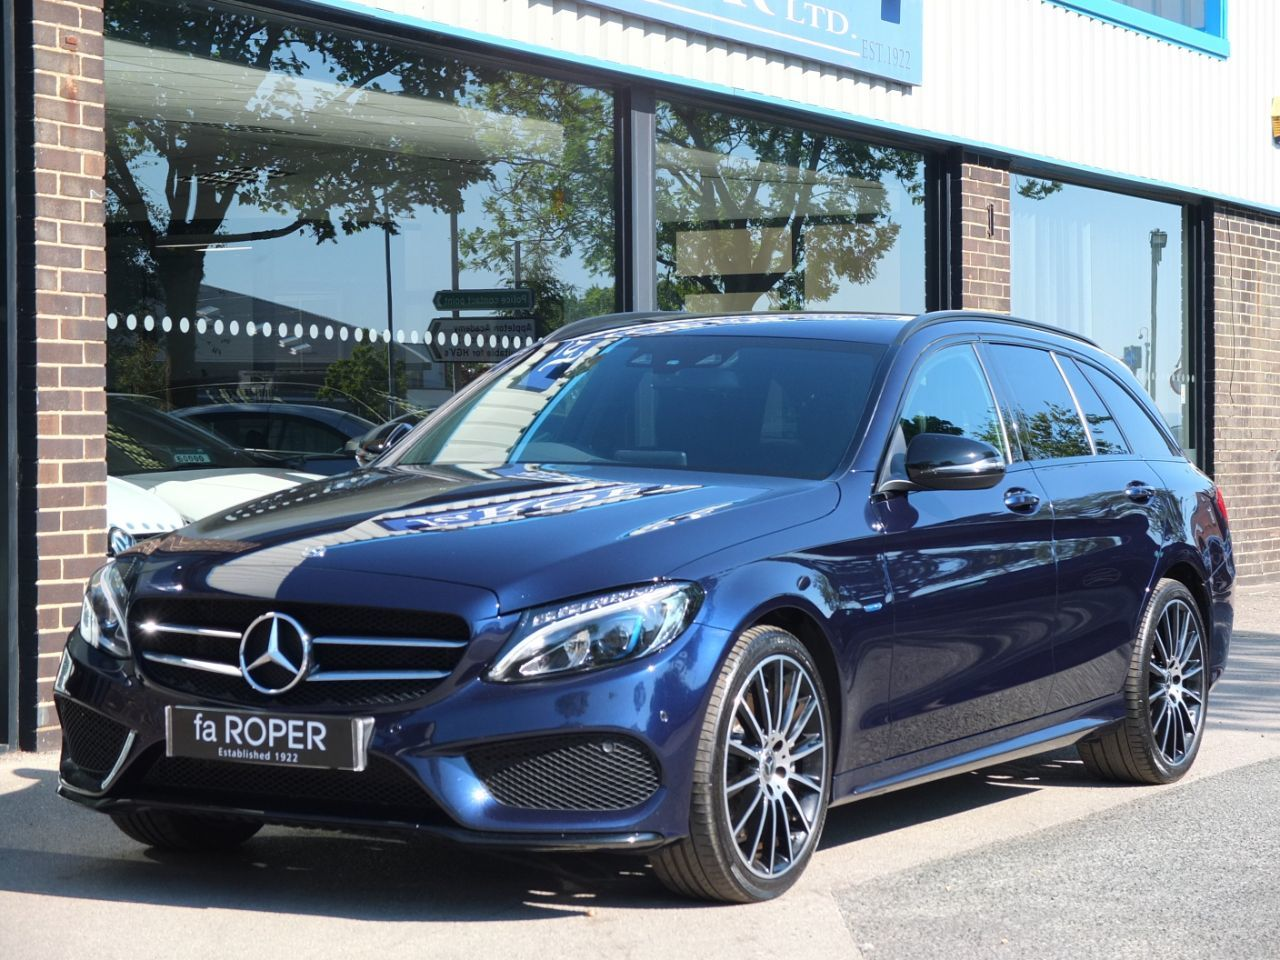 Mercedes-Benz C Class 2.0 Estate C350e AMG Line PHEV Auto Estate Petrol / Electric Hybrid Cavansite Blue MetallicMercedes-Benz C Class 2.0 Estate C350e AMG Line PHEV Auto Estate Petrol / Electric Hybrid Cavansite Blue Metallic at fa Roper Ltd Bradford